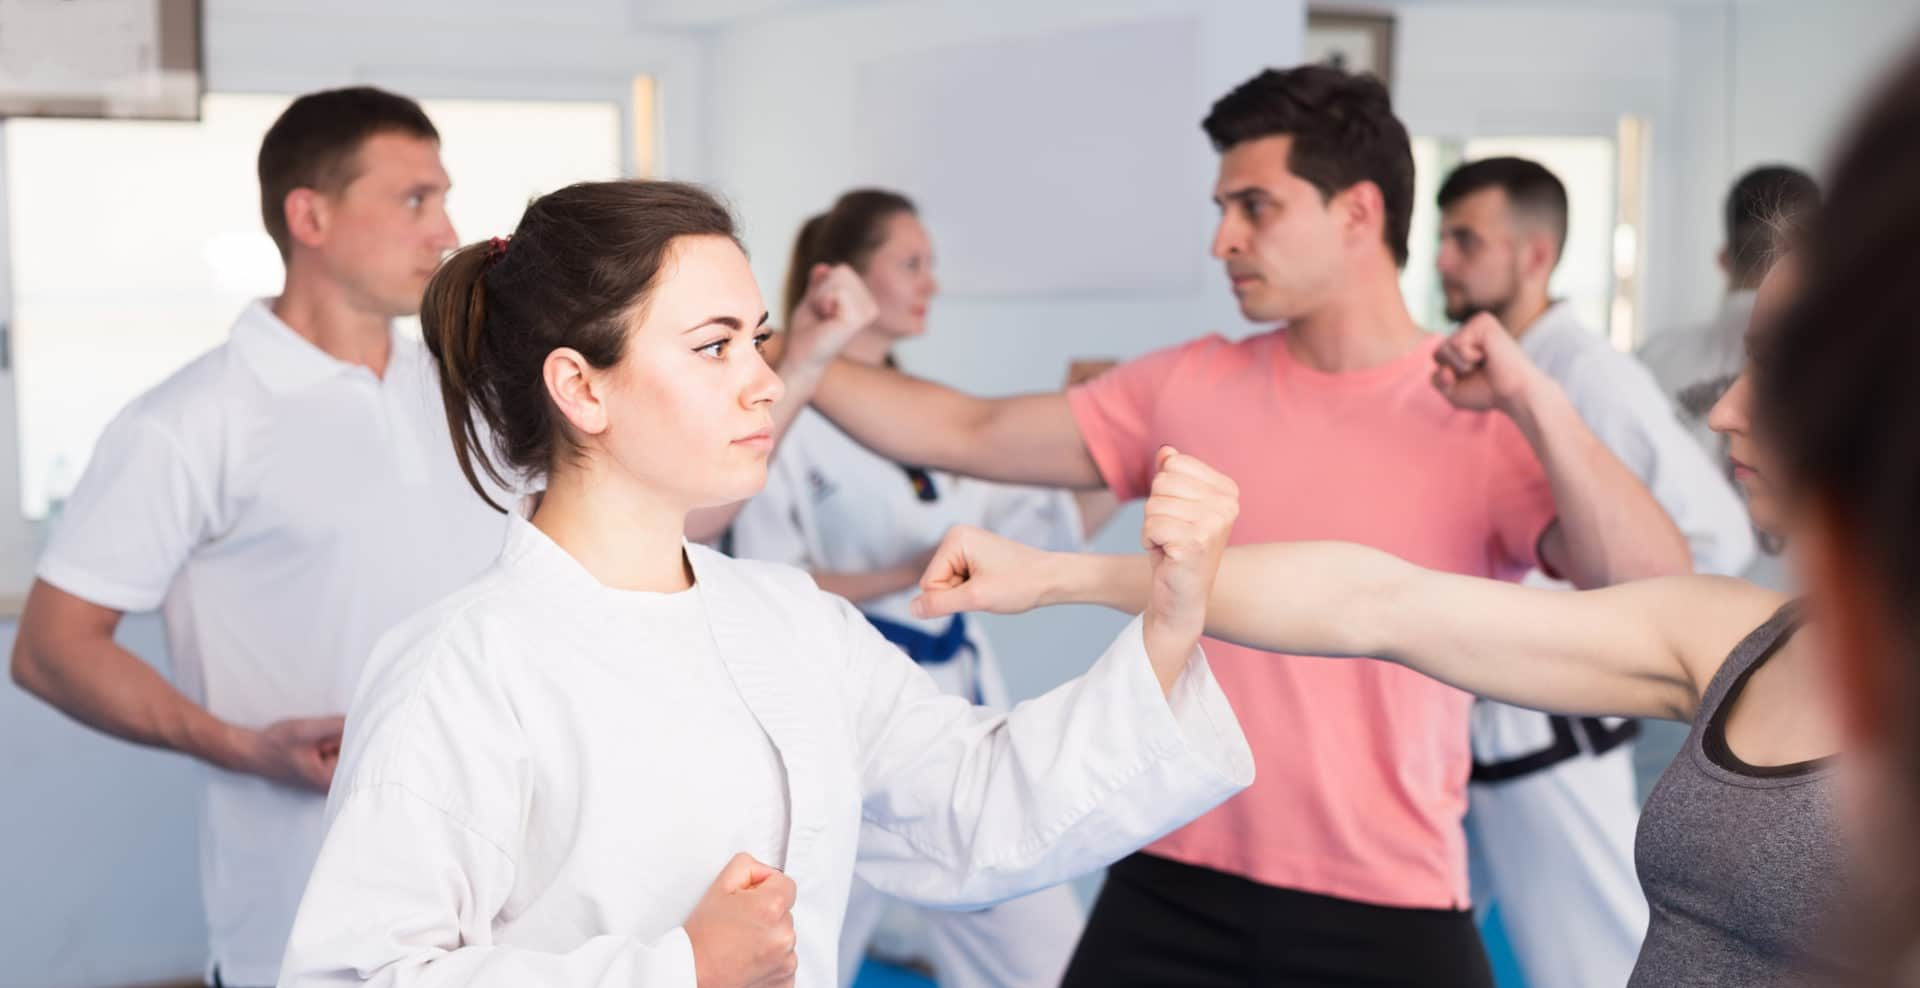 Mixed Group of Adults Martial Arts